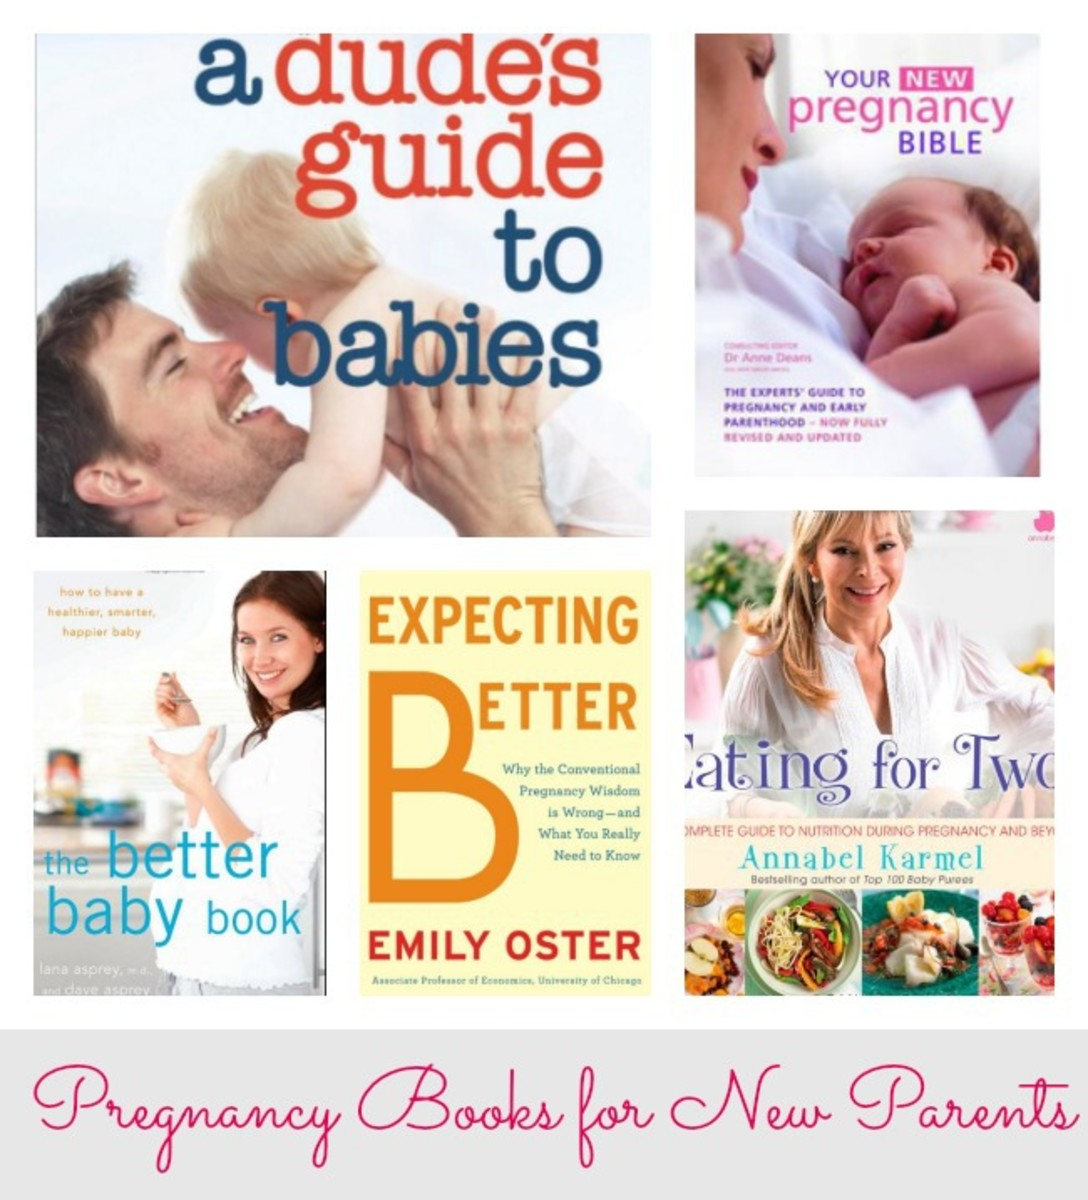 Books on pregnancy for dads to be